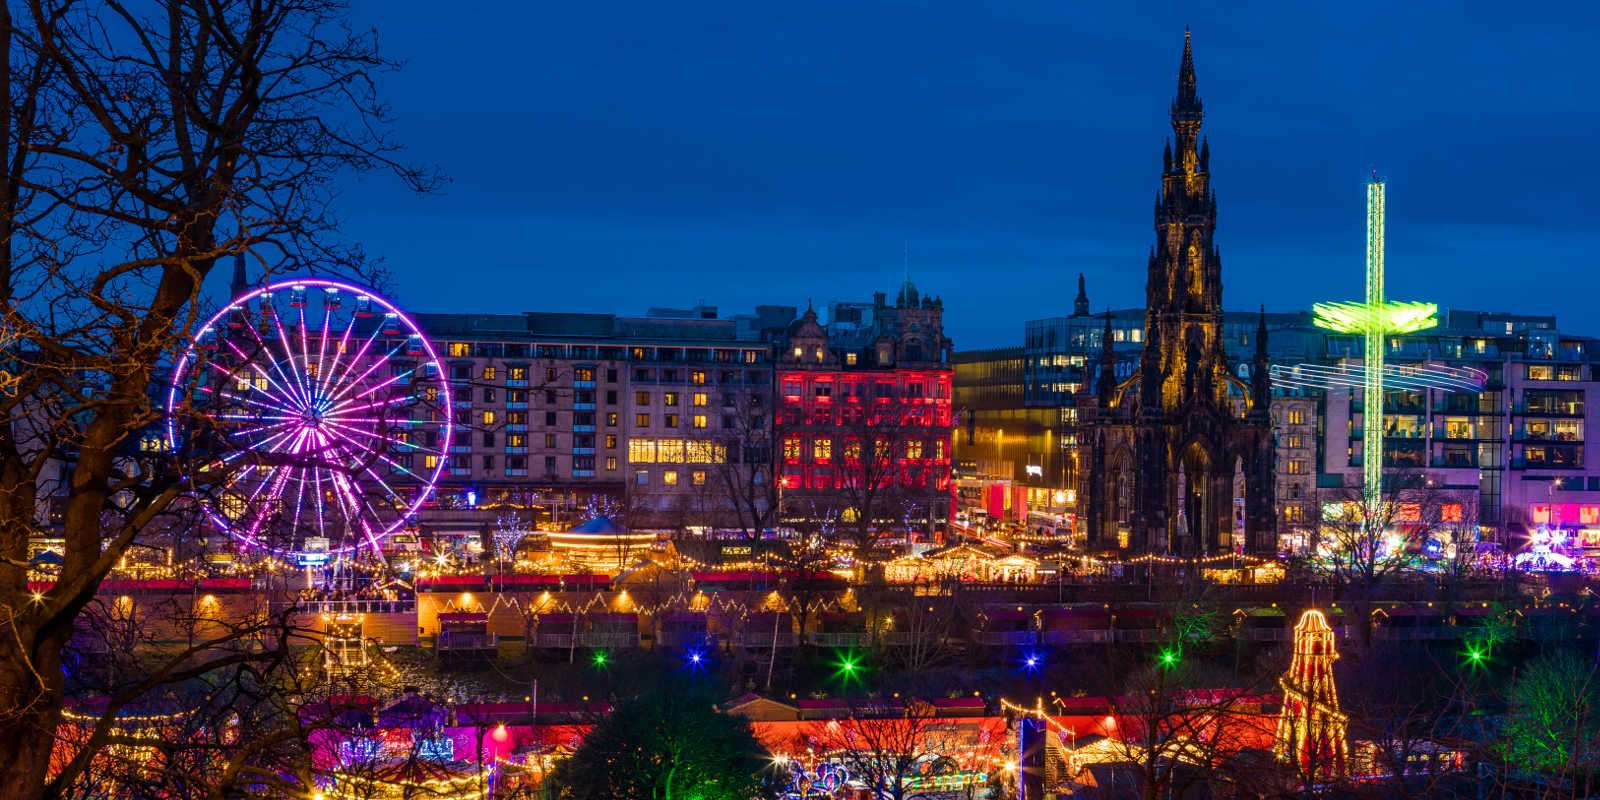 Colourful lights and attractions in Edinburgh at Christmas time